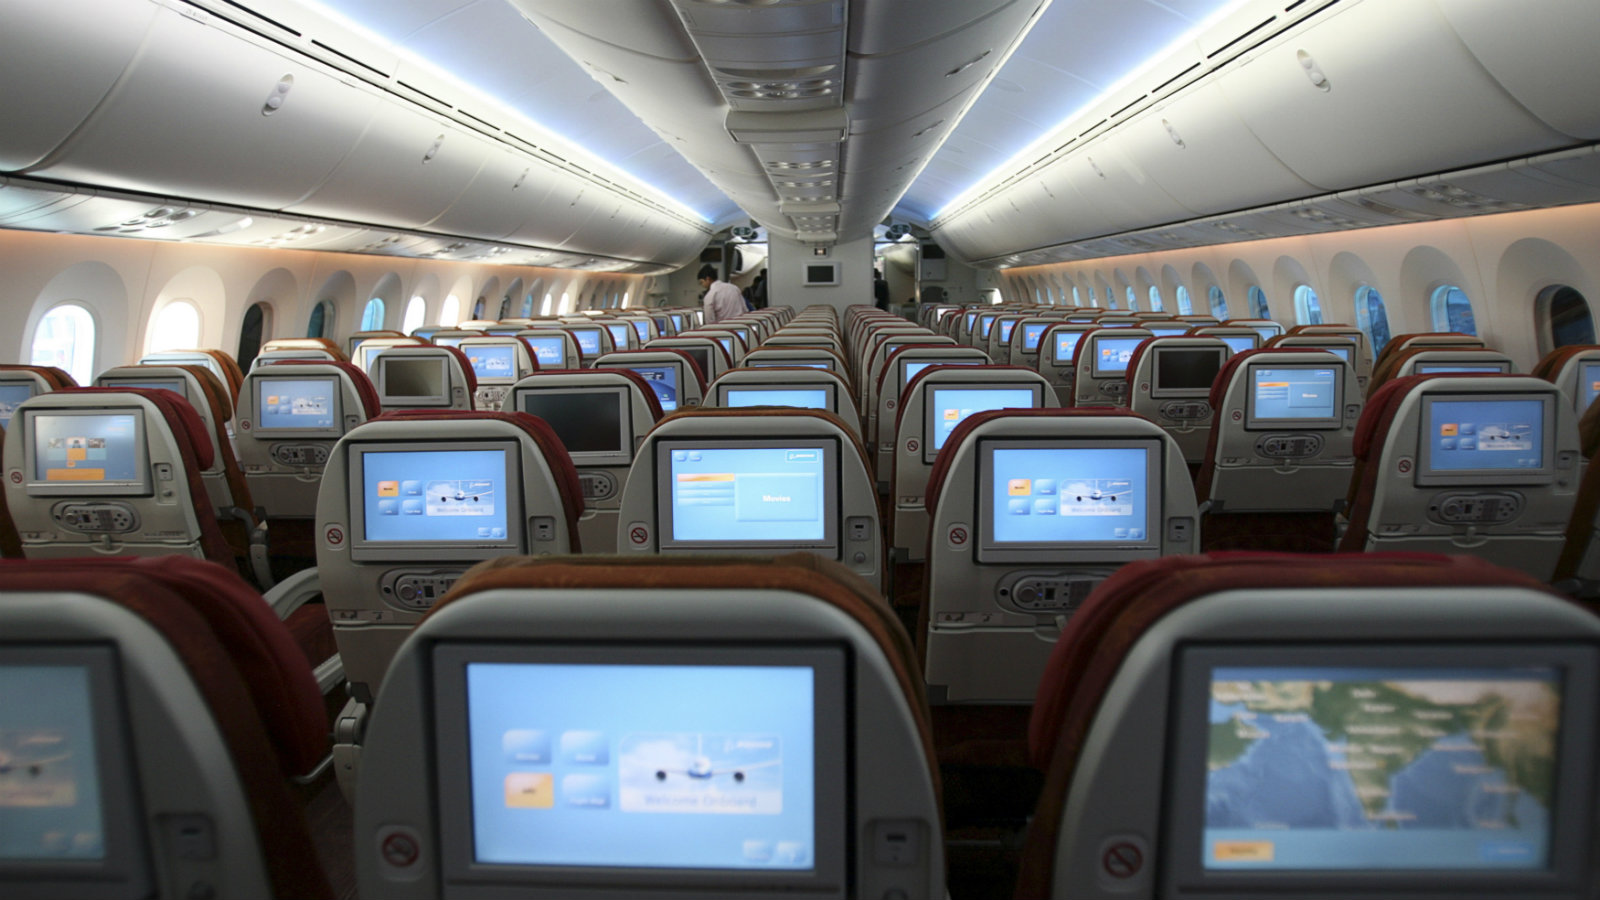 A media personnel stands in the aisle of the newly inducted Boeing 787-8 series Dreamliner aircraft during a photo call at the five-day-long India Aviation 2012 event in the southern Indian city of Hyderabad March 15, 2012.